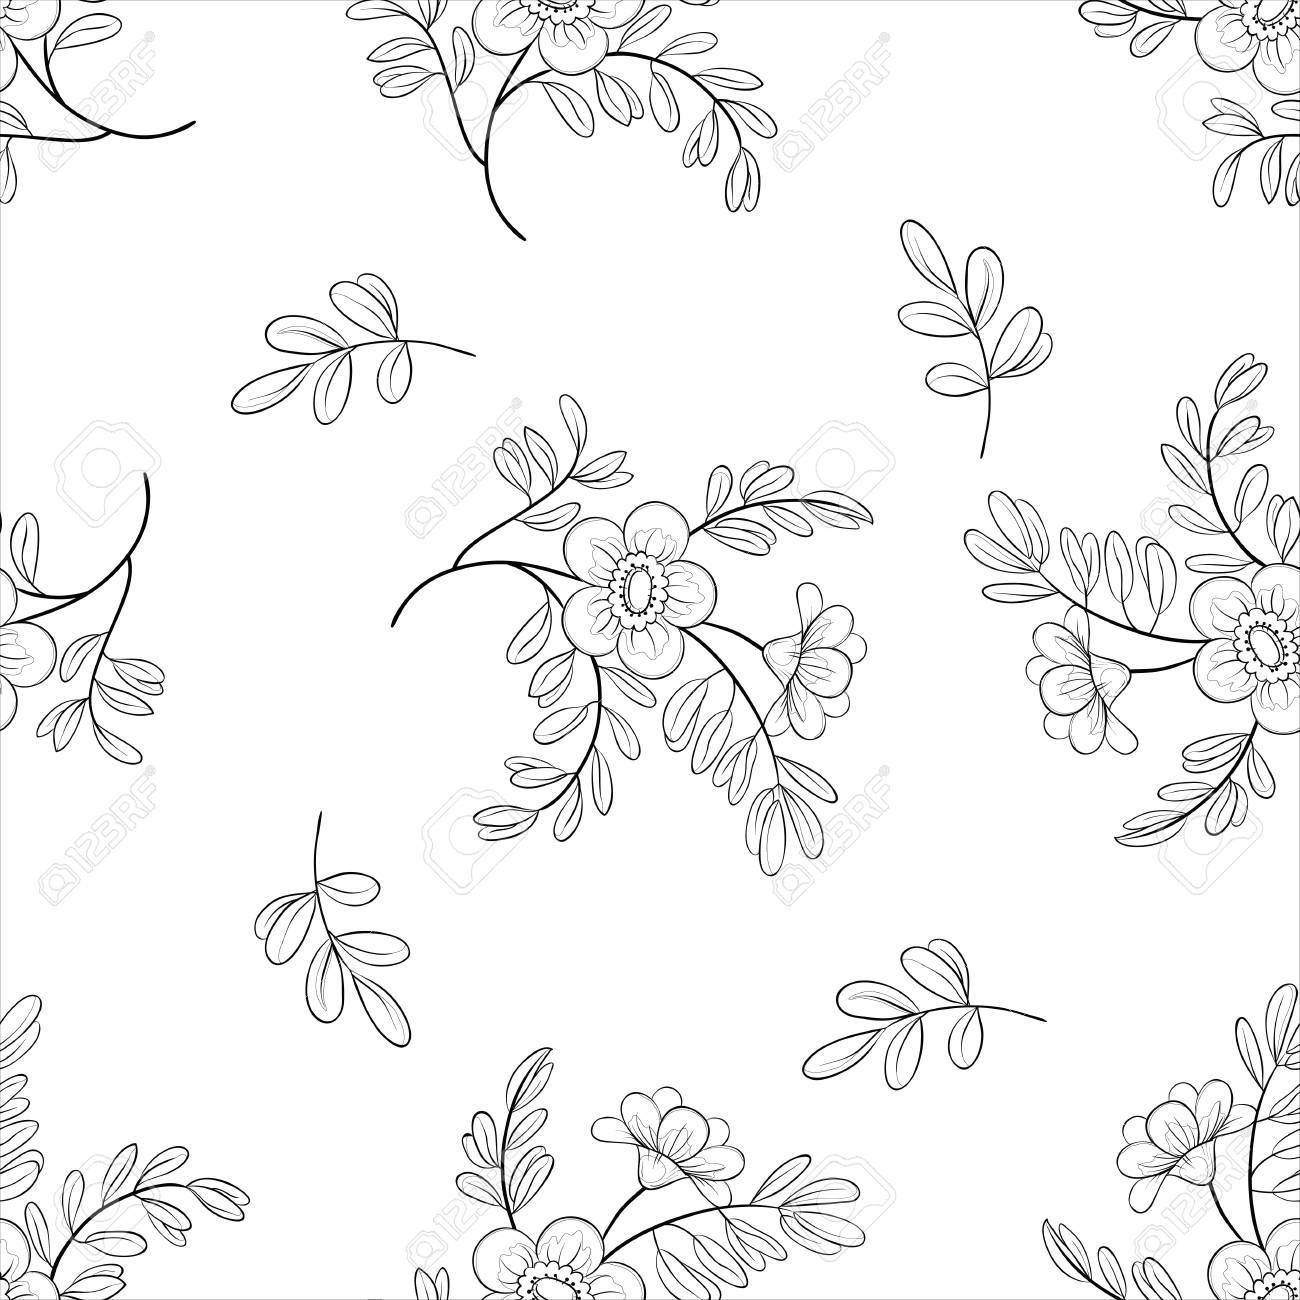 Vector seamless floral background, symbolical flowers and leafs, contours Stock Vector - 10518685